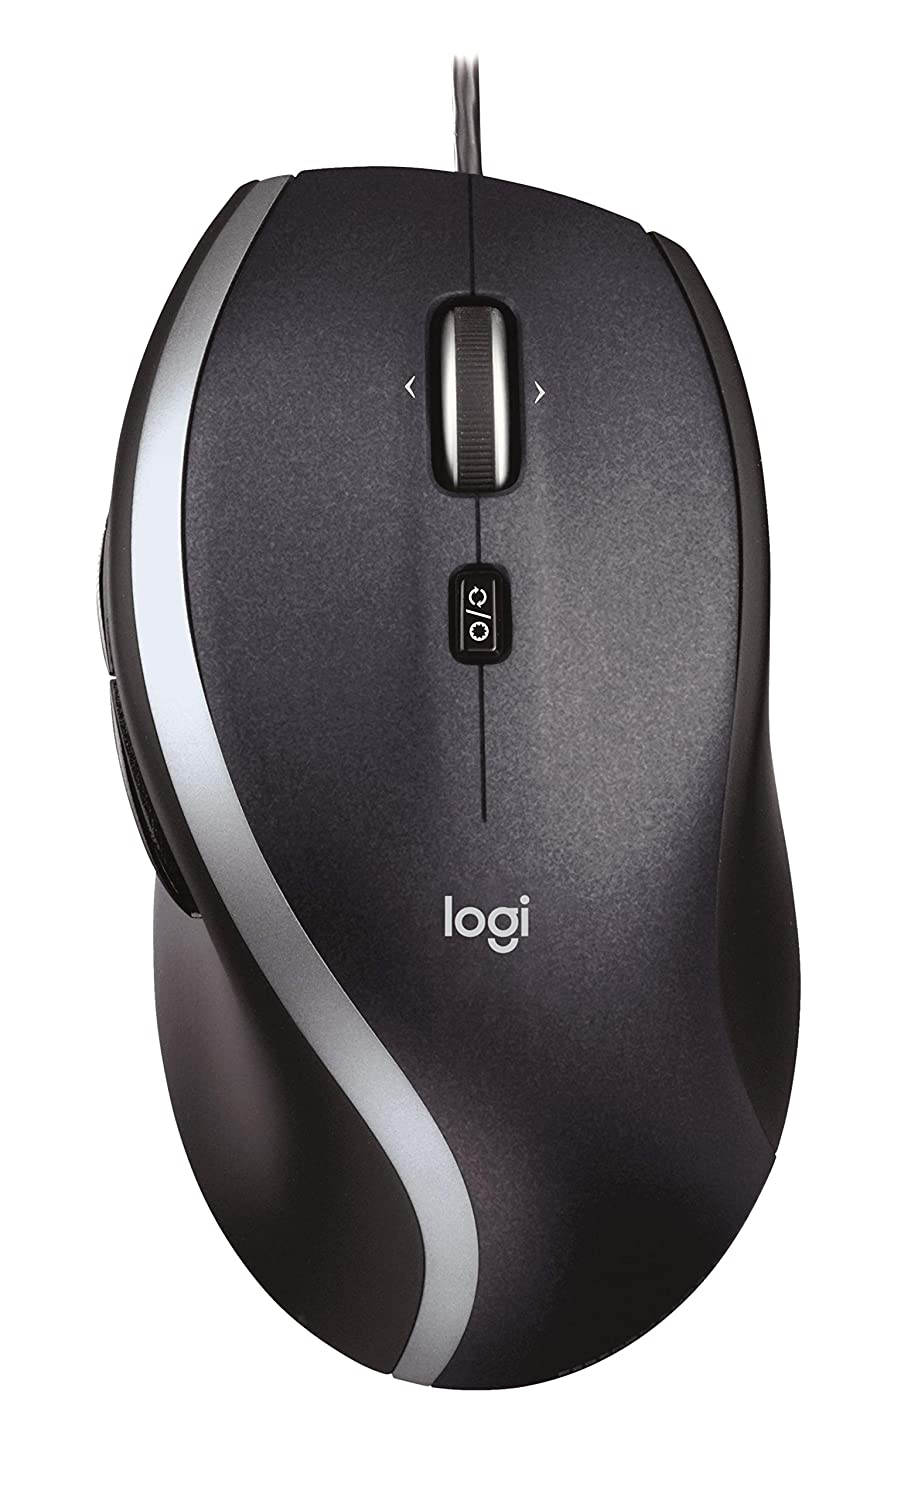 05bdb682c48 Amazon.com: Logitech M500 Corded Mouse – Wired USB Mouse for Computers and  Laptops, with Hyper-Fast Scrolling, Dark Gray: Electronics